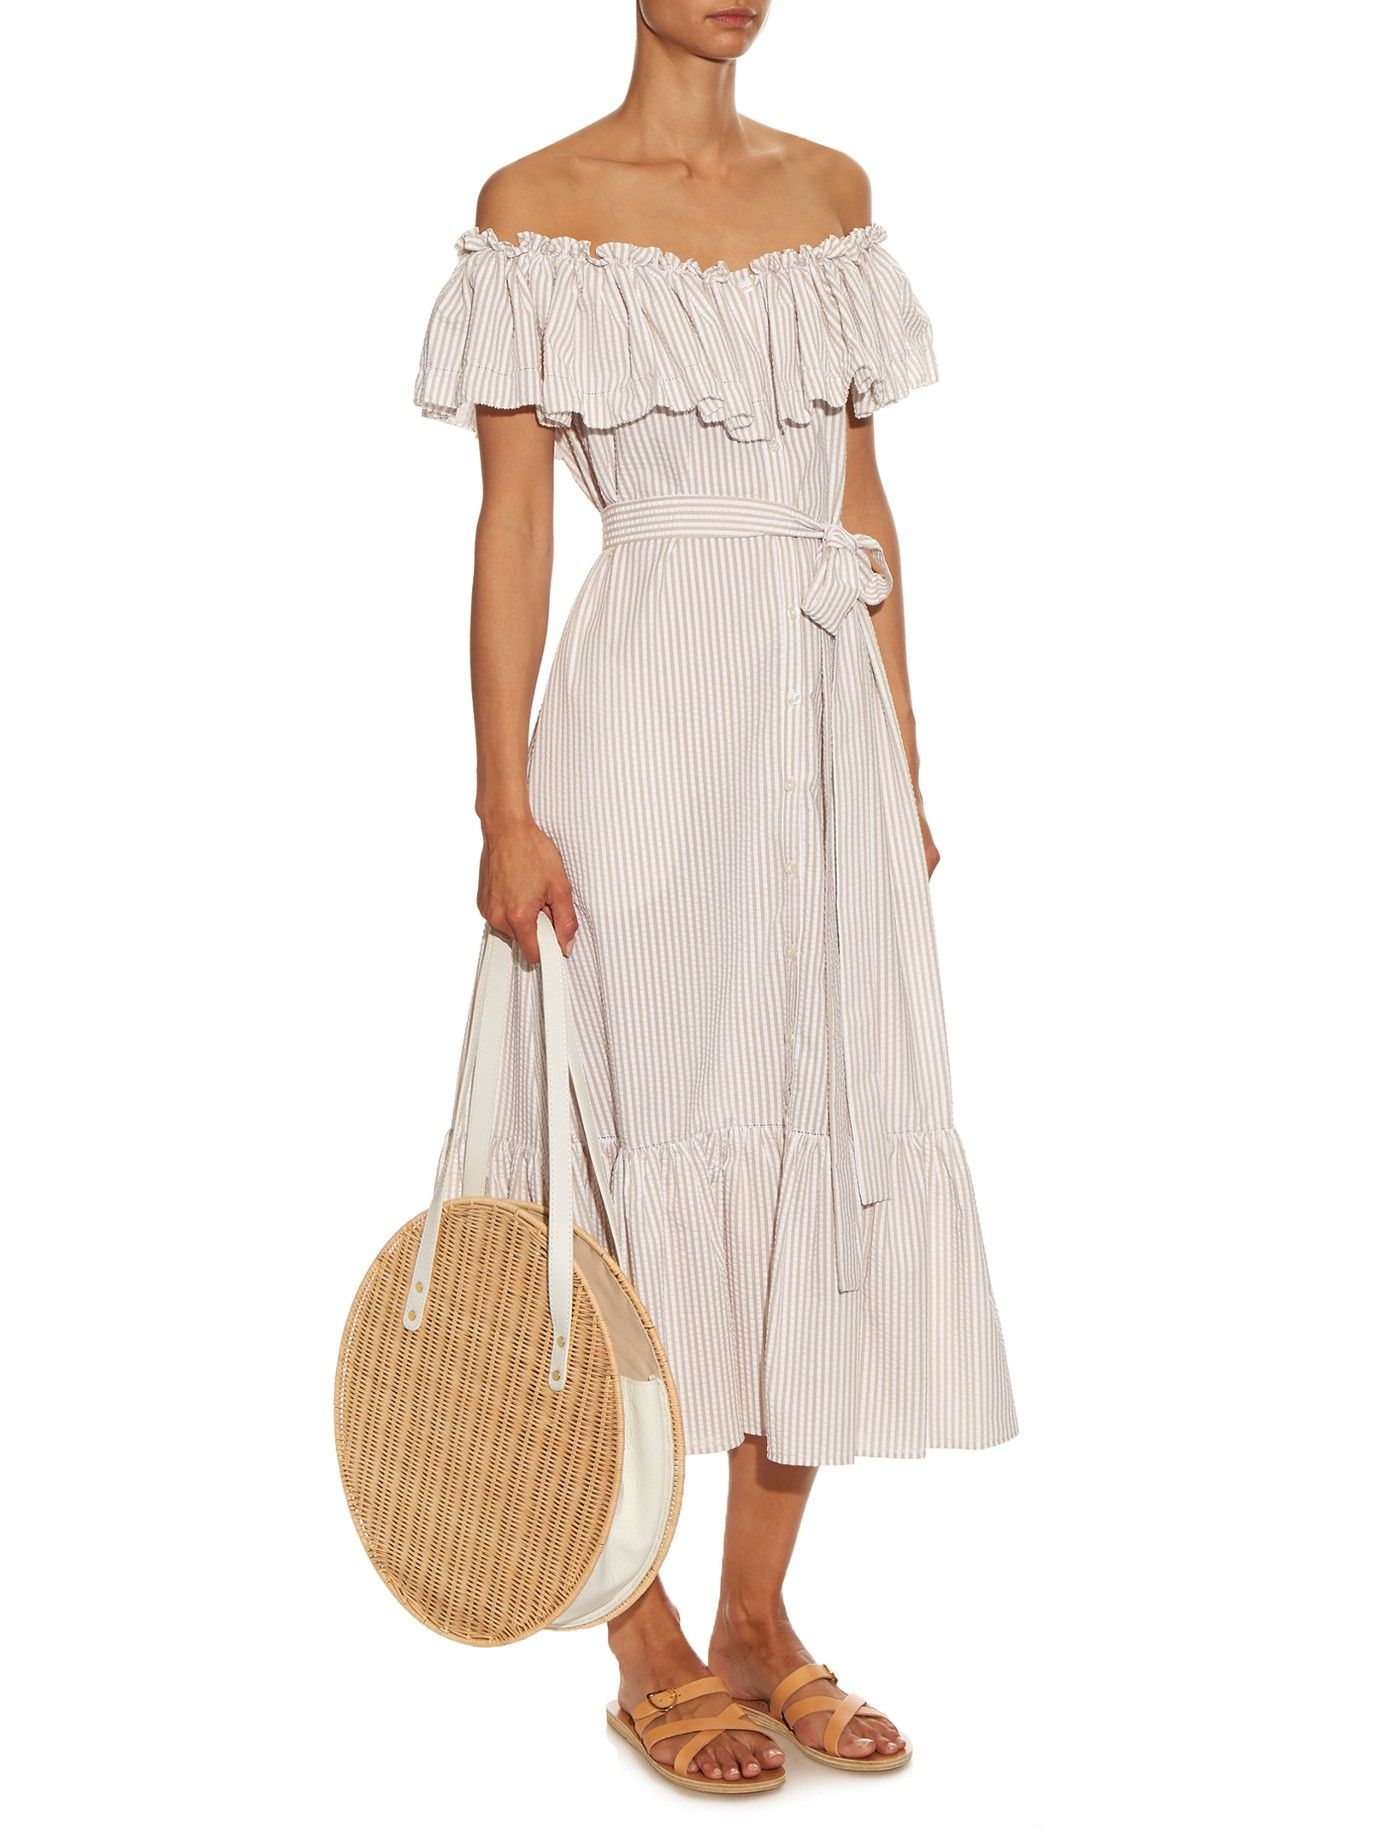 Mira off-the-shoulder striped cotton dress Lisa Marie Fernandez High Quality Online Clearance Visa Payment Wiki Cheap Online Discount Footlocker Pictures ZcEz25